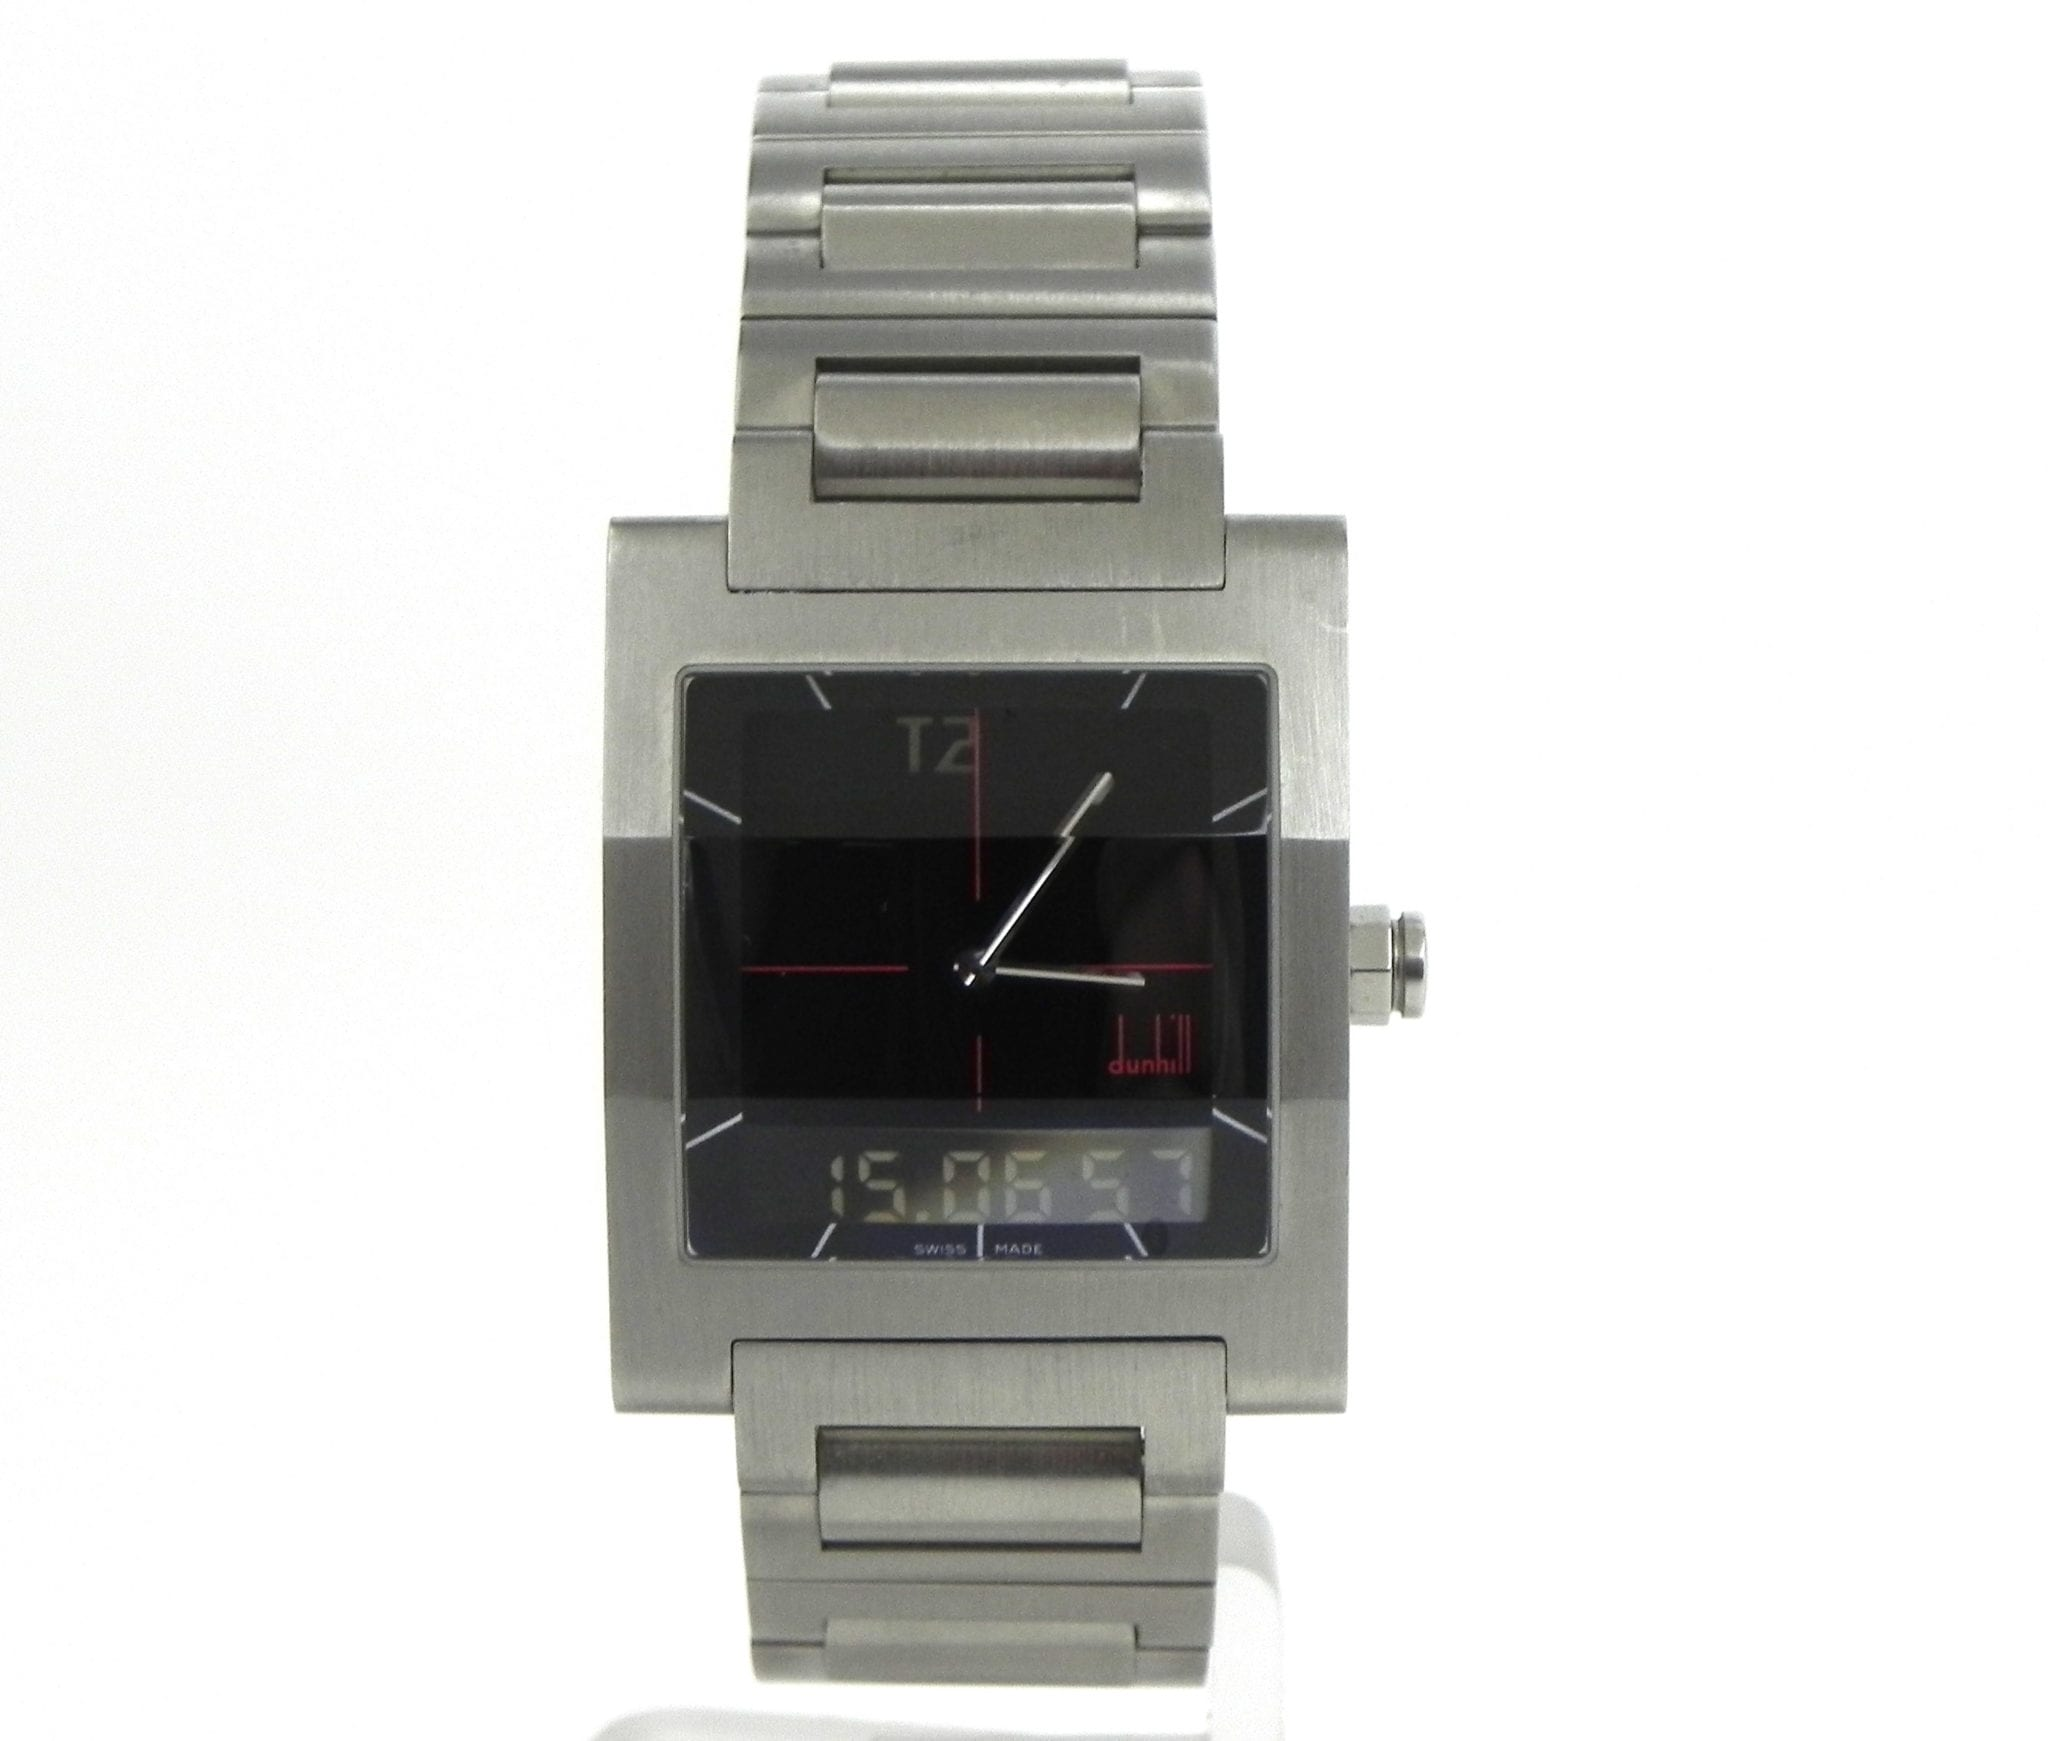 dunhill men s ss dm7 digital quartz watch includes box papers 1100 00 previous next